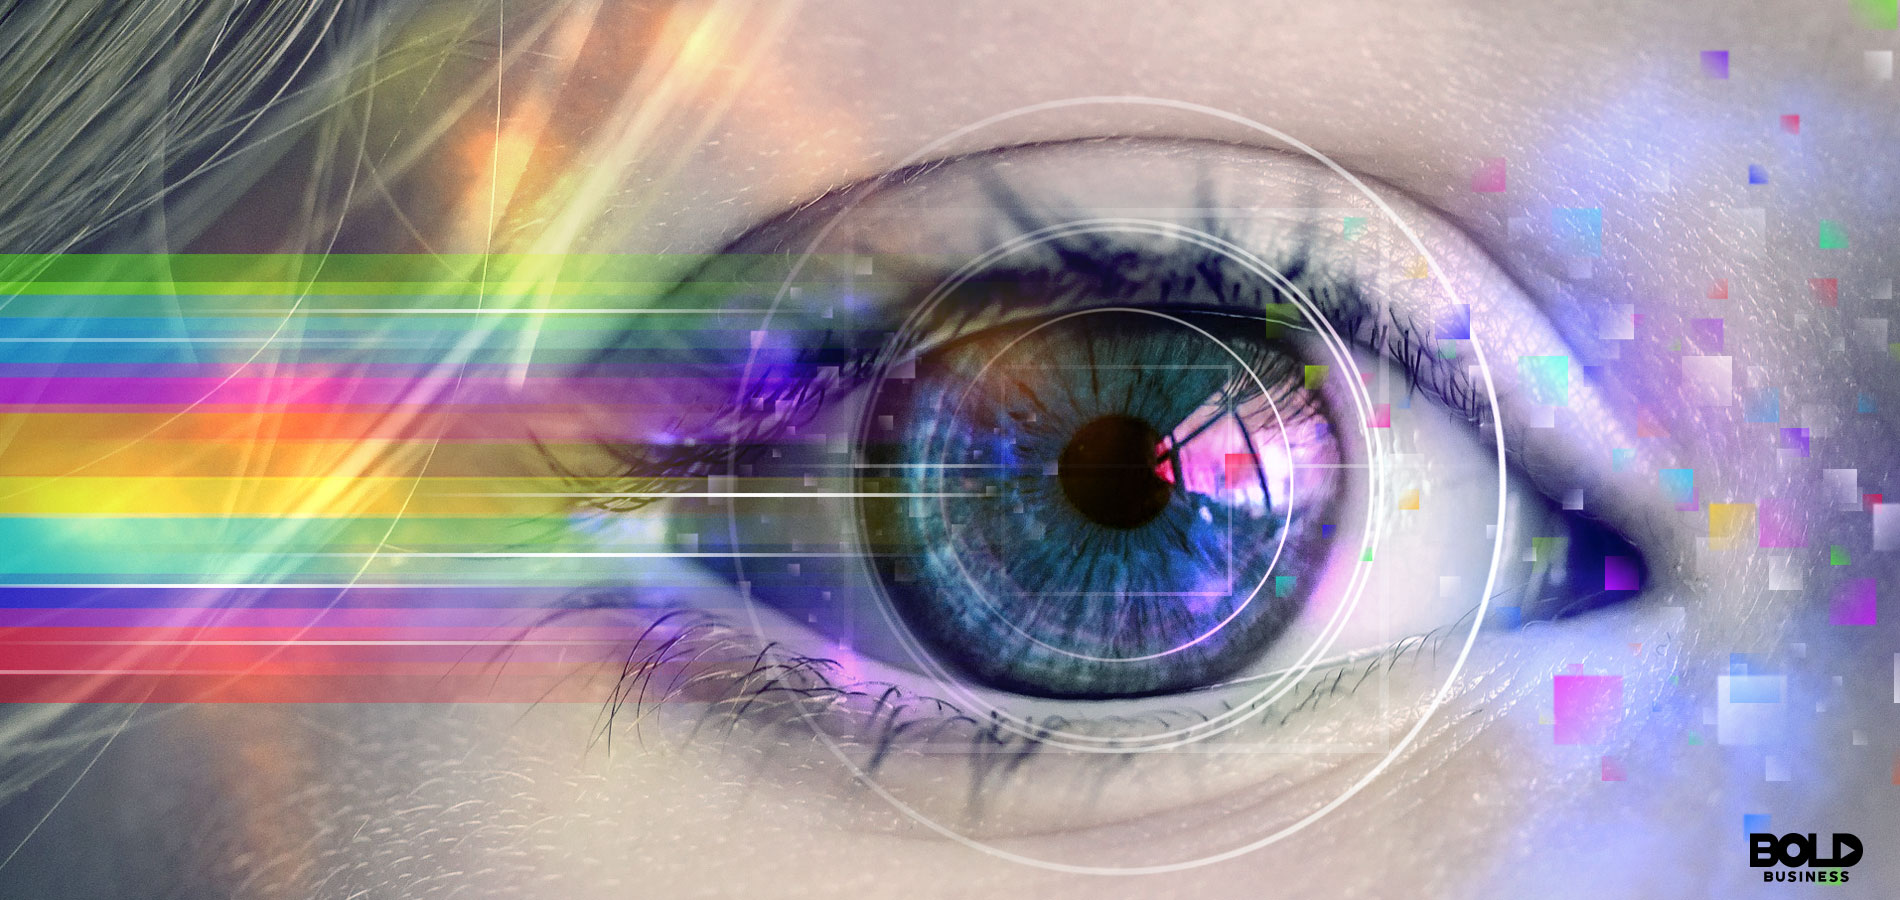 a close up of a woman's eye with a rainbow of colors streaming from it